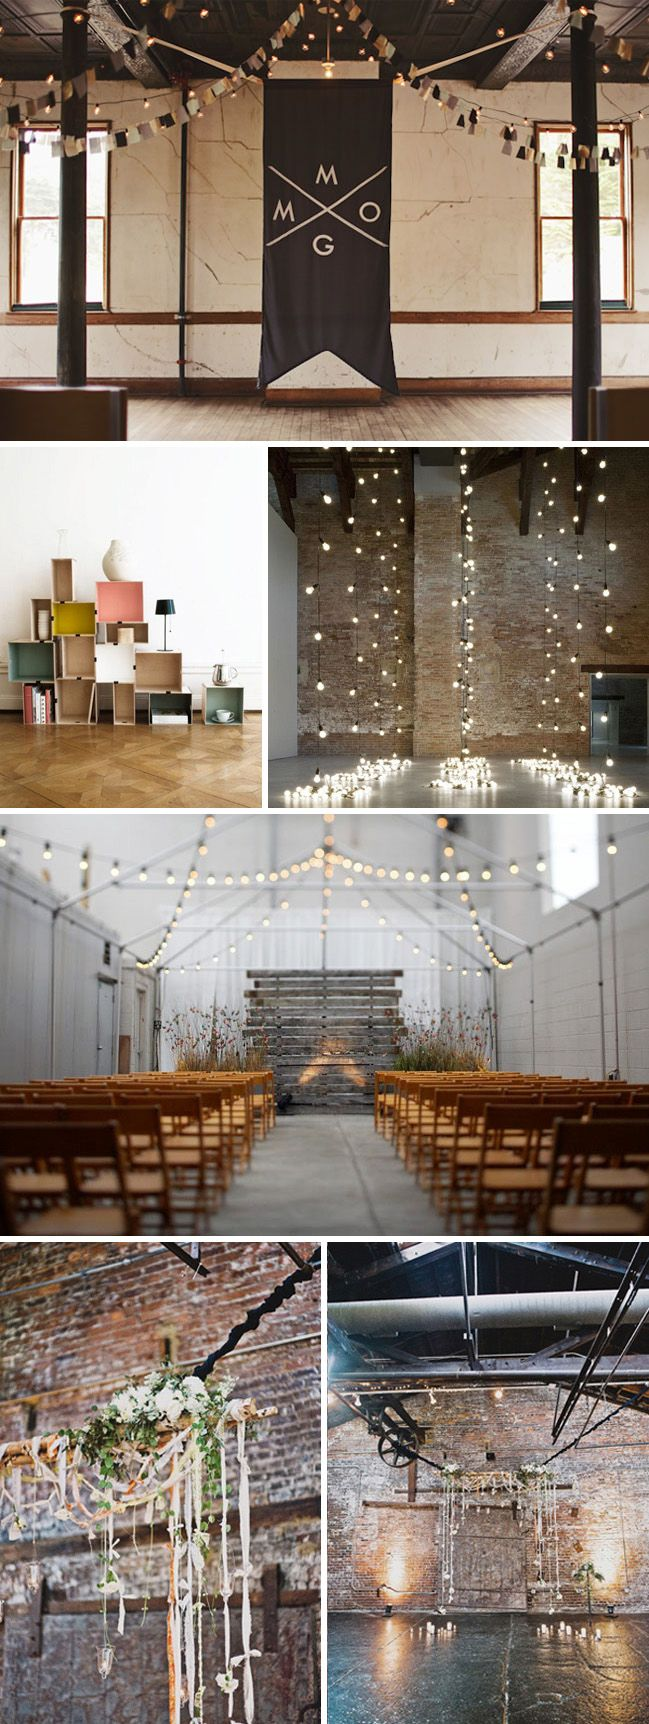 Wedding Trend: Ceremony Backdrop RoundUp - The Collection Event Studio - The Collection - A Wine Country Wedding & Event Studio Showcasing a Curated Collection of Vendors & Venues